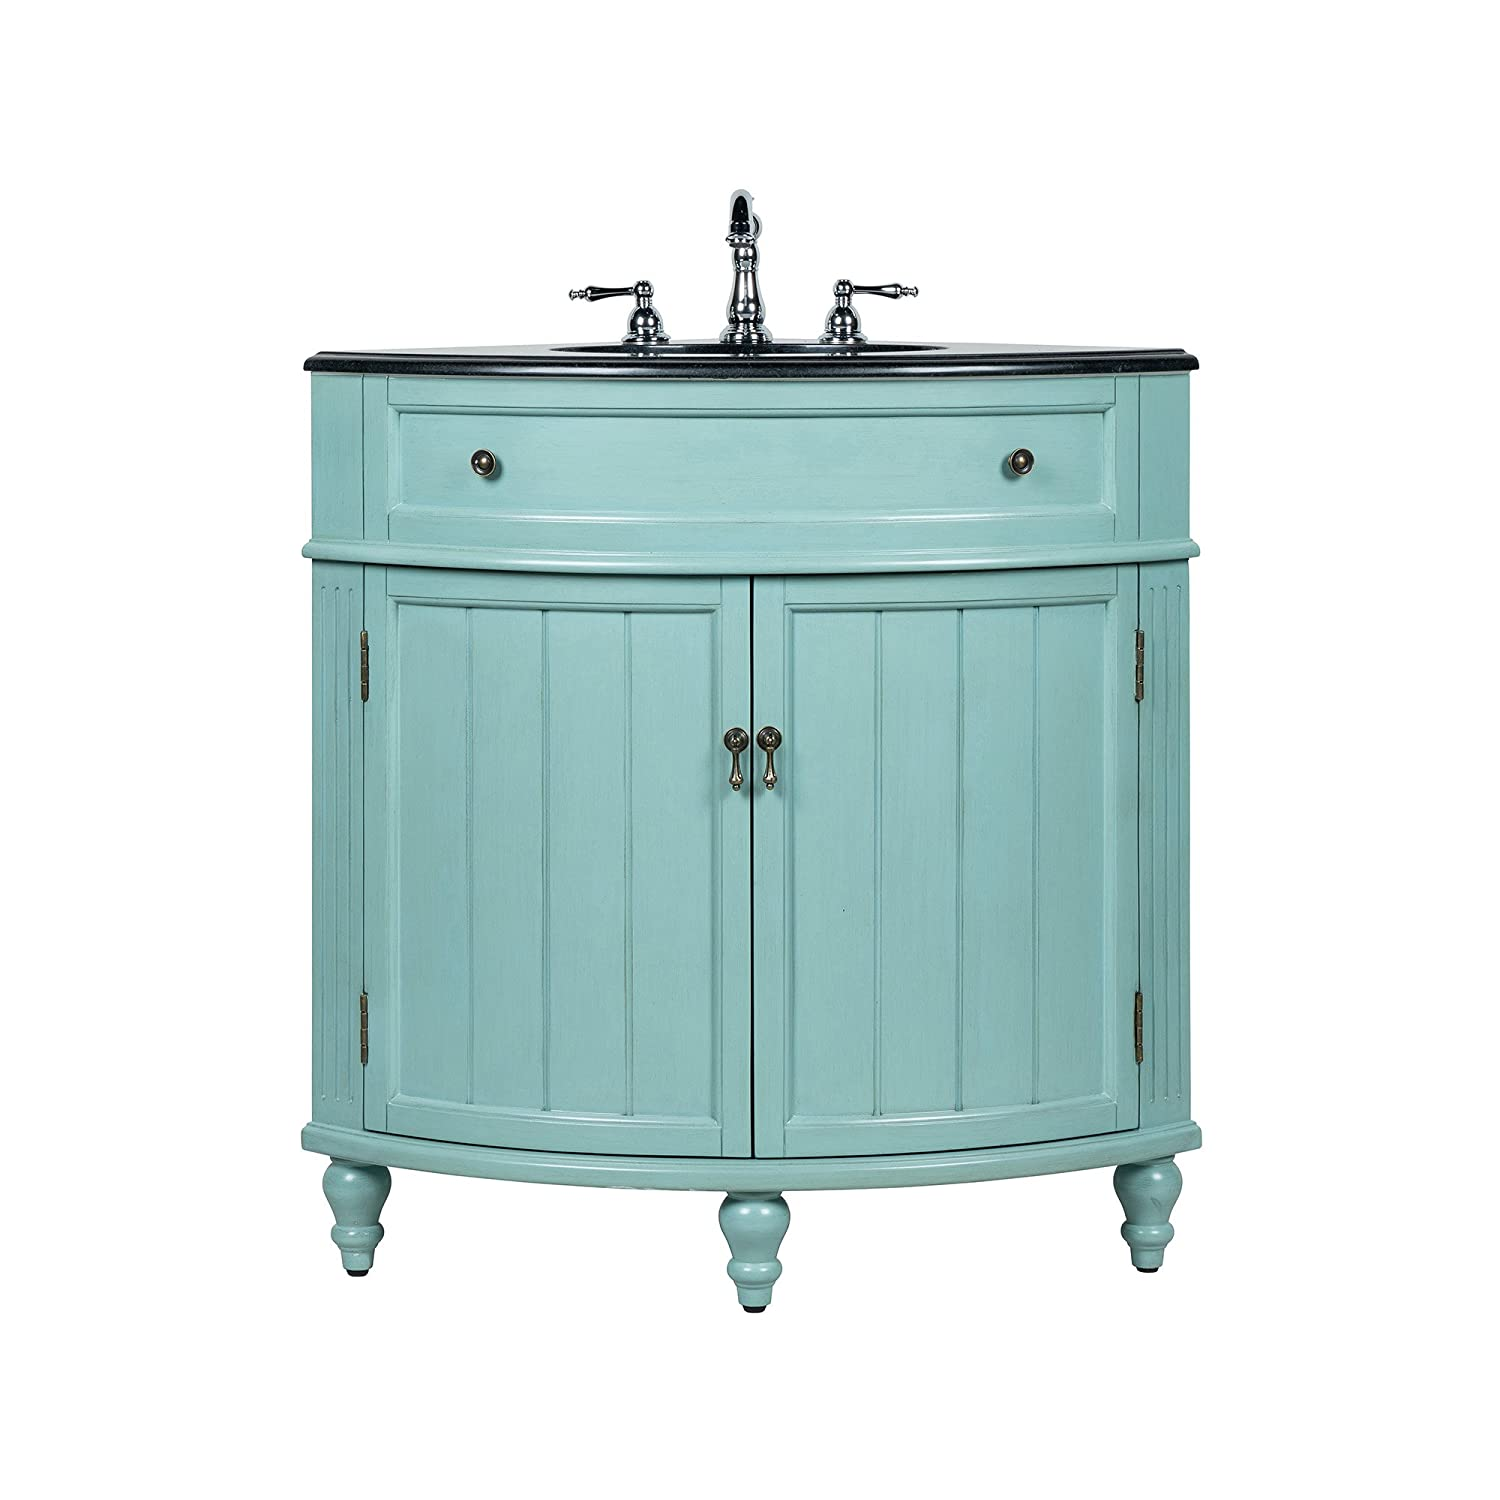 24 benton collection thomasville blue slim corner bathroom sink rh amazon com large corner bathroom vanity with sink corner bathroom vanity with two sinks